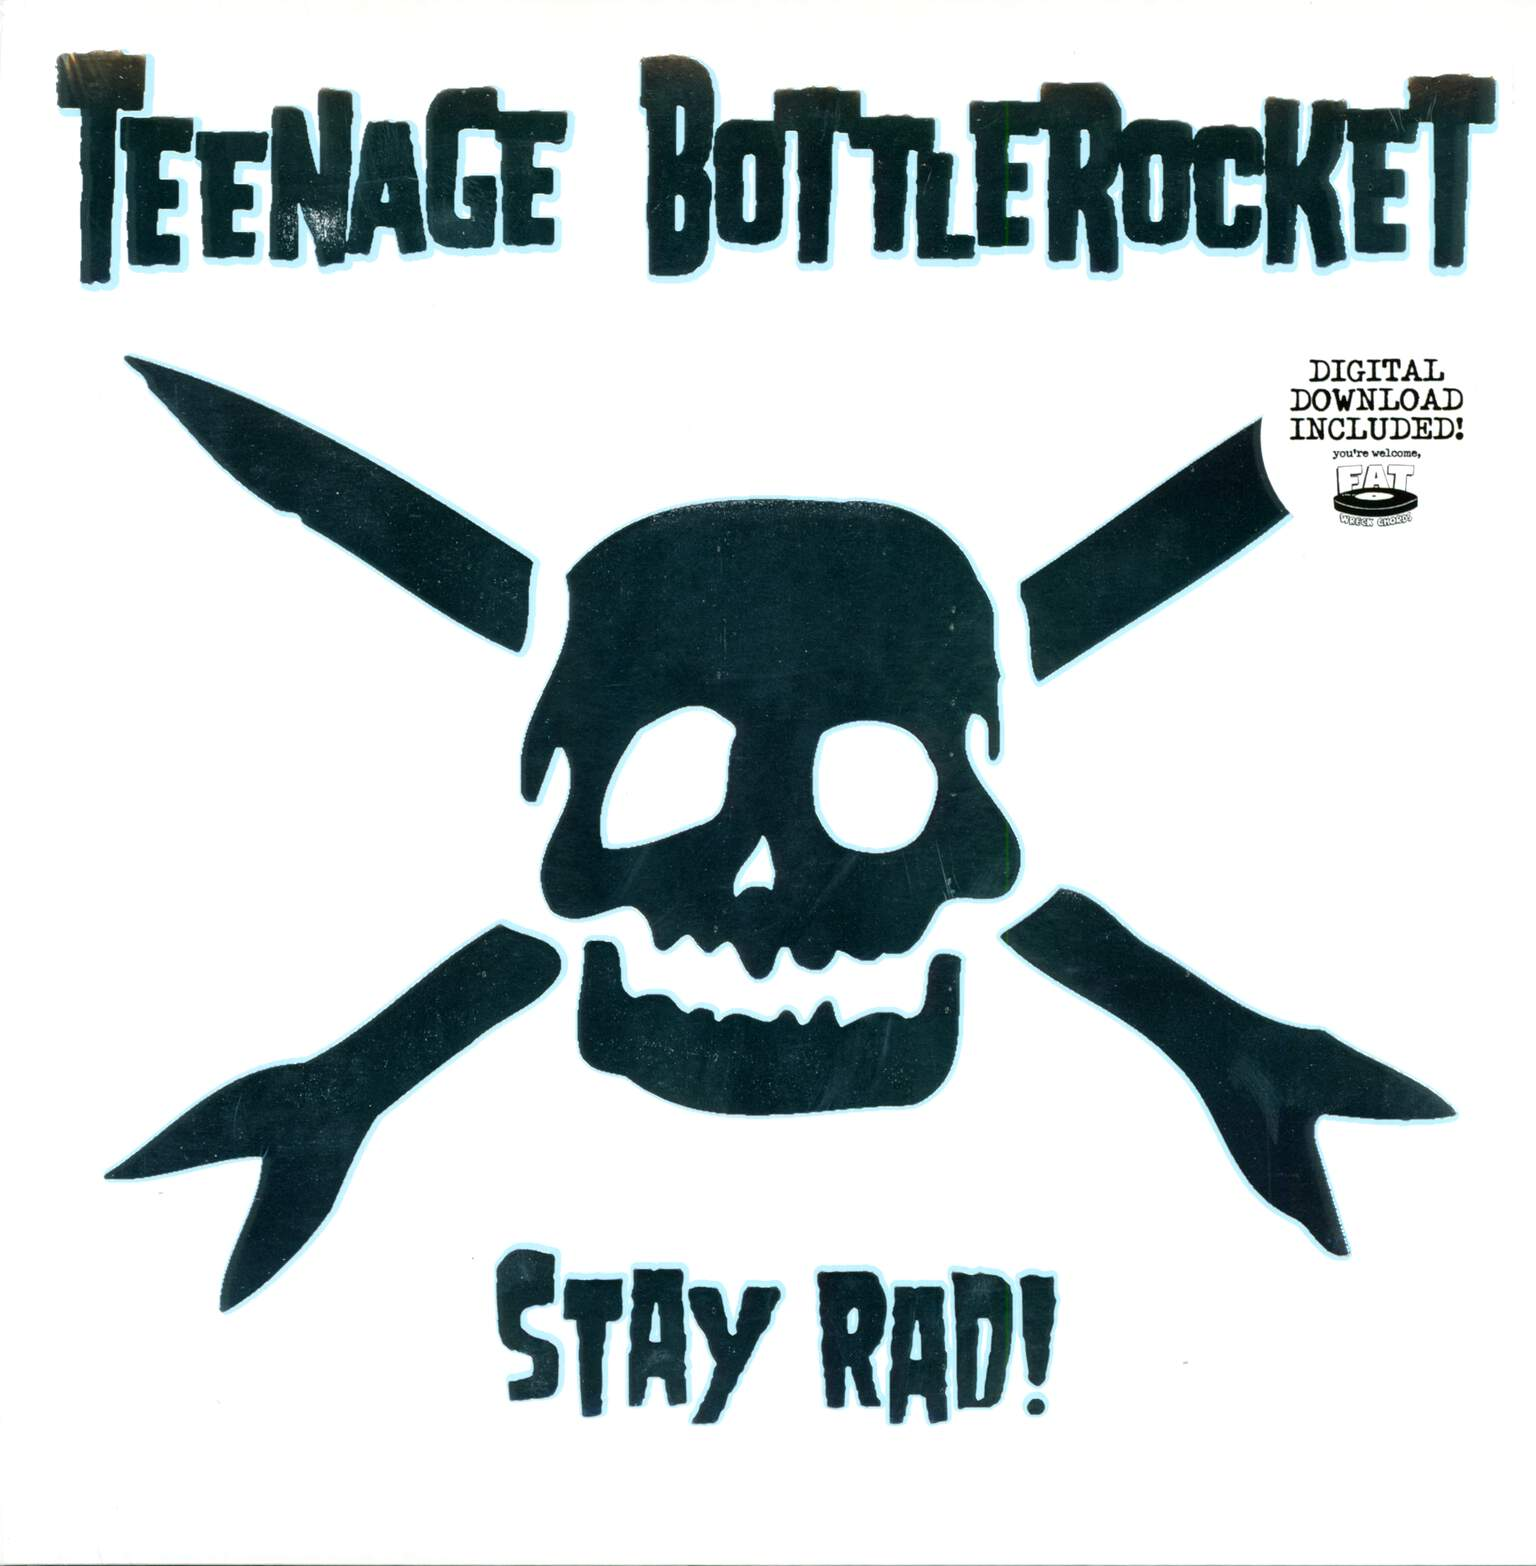 Teenage Bottlerocket: Stay Rad!, 1×LP (Vinyl)